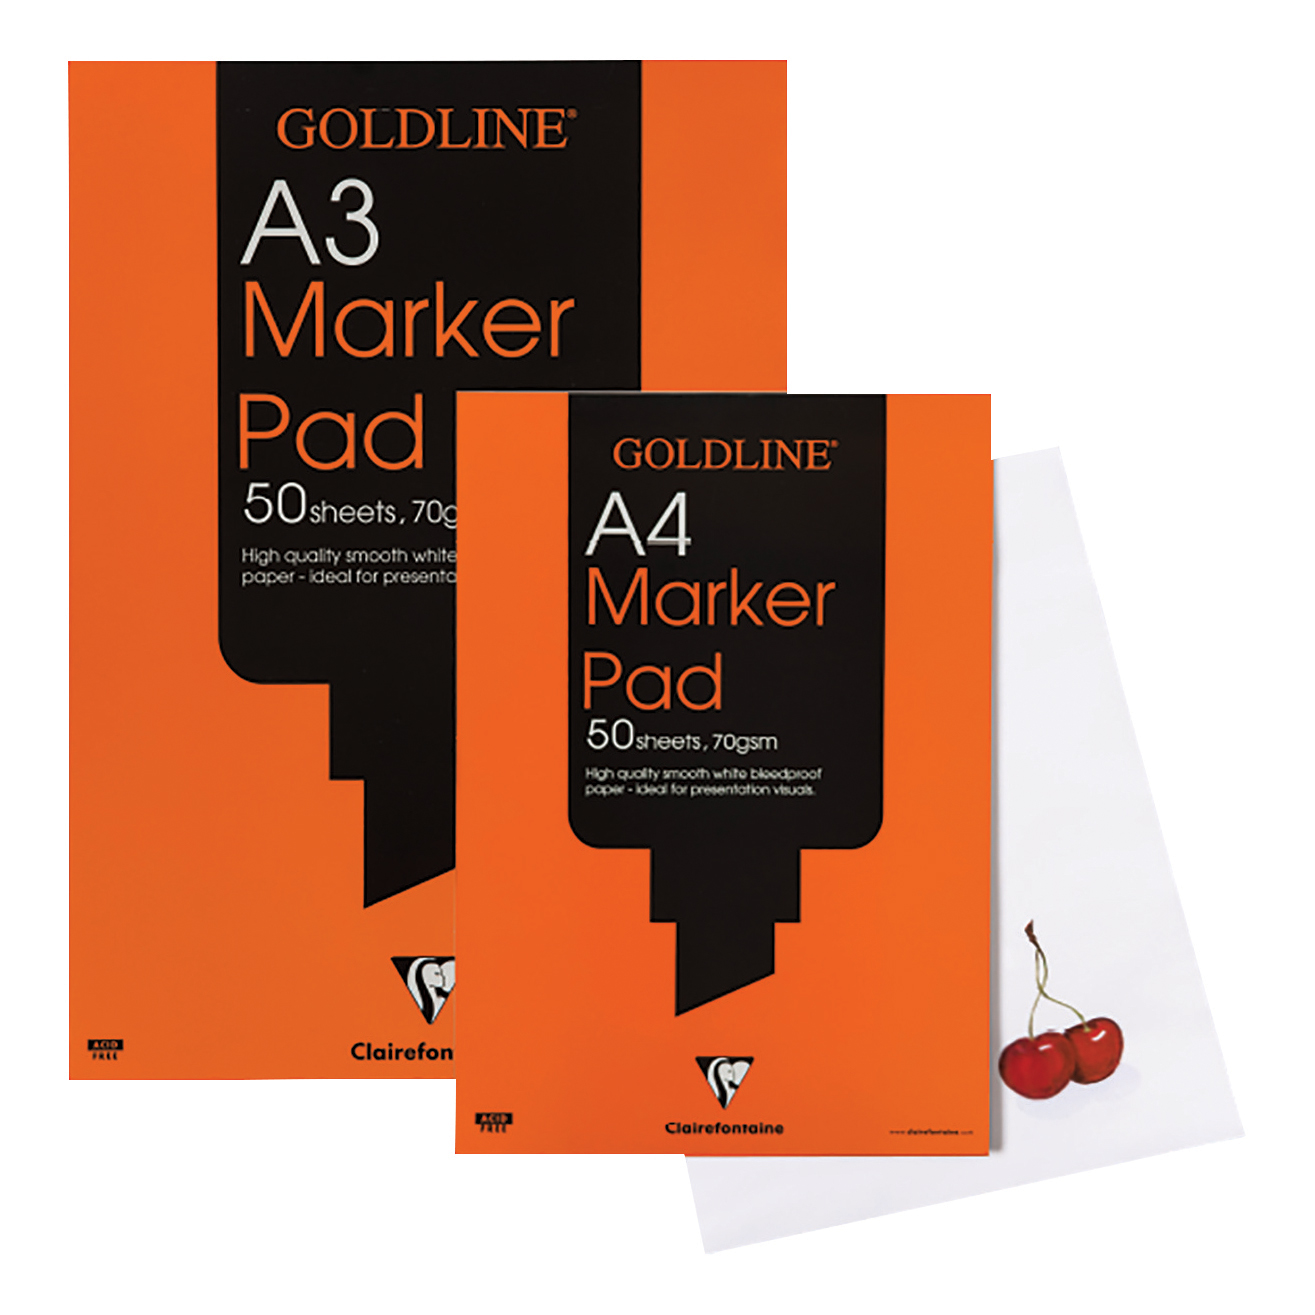 Goldline Bleedproof Marker Pad 70gsm Acid-free Paper 50 Sheets A3 White Ref GPB1A3Z Pack 5